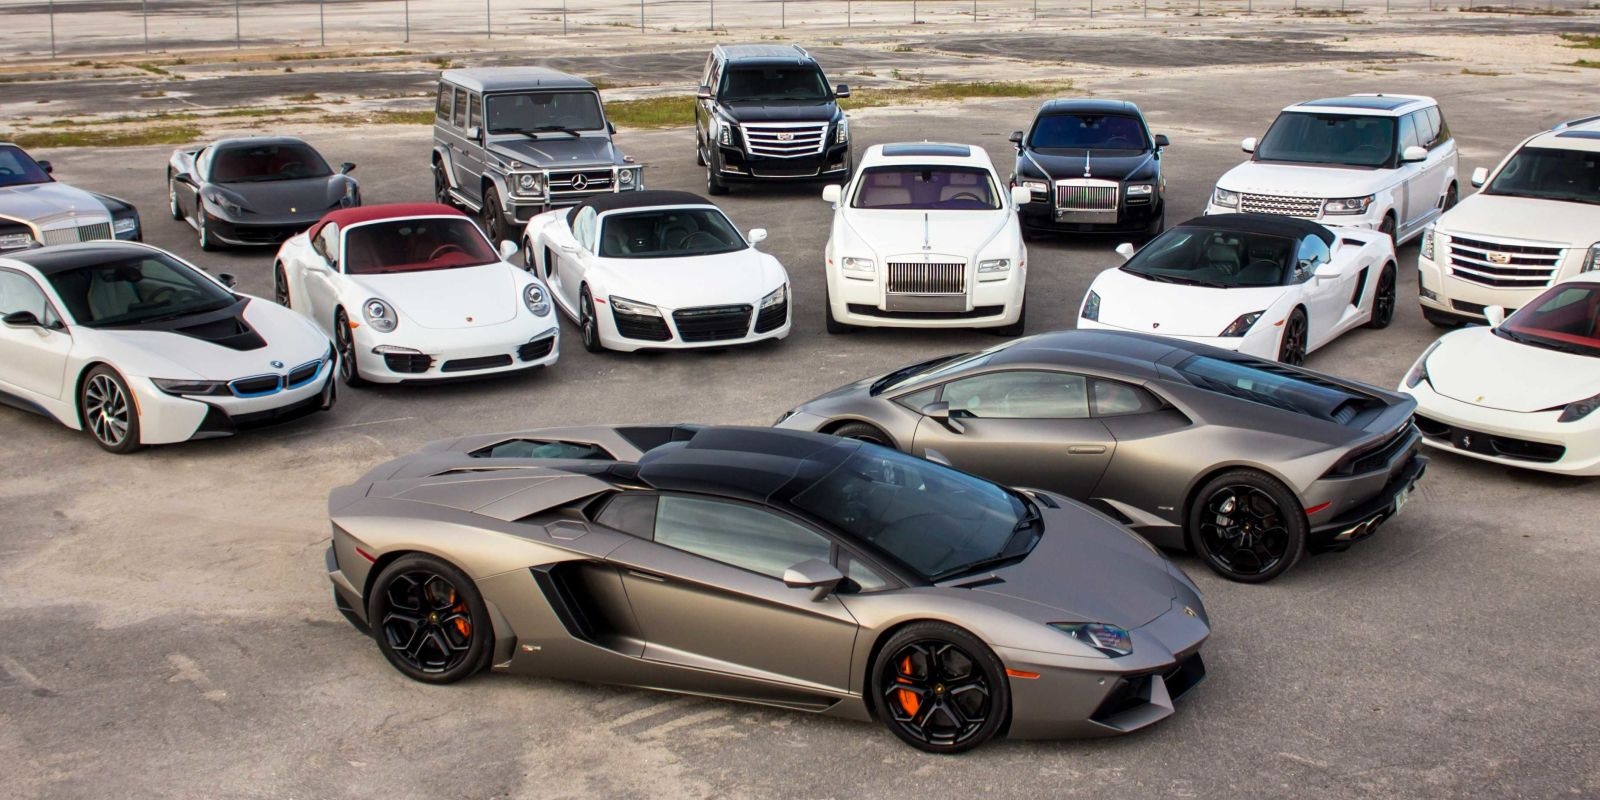 luxury rental cars how to rent a luxury car. Black Bedroom Furniture Sets. Home Design Ideas